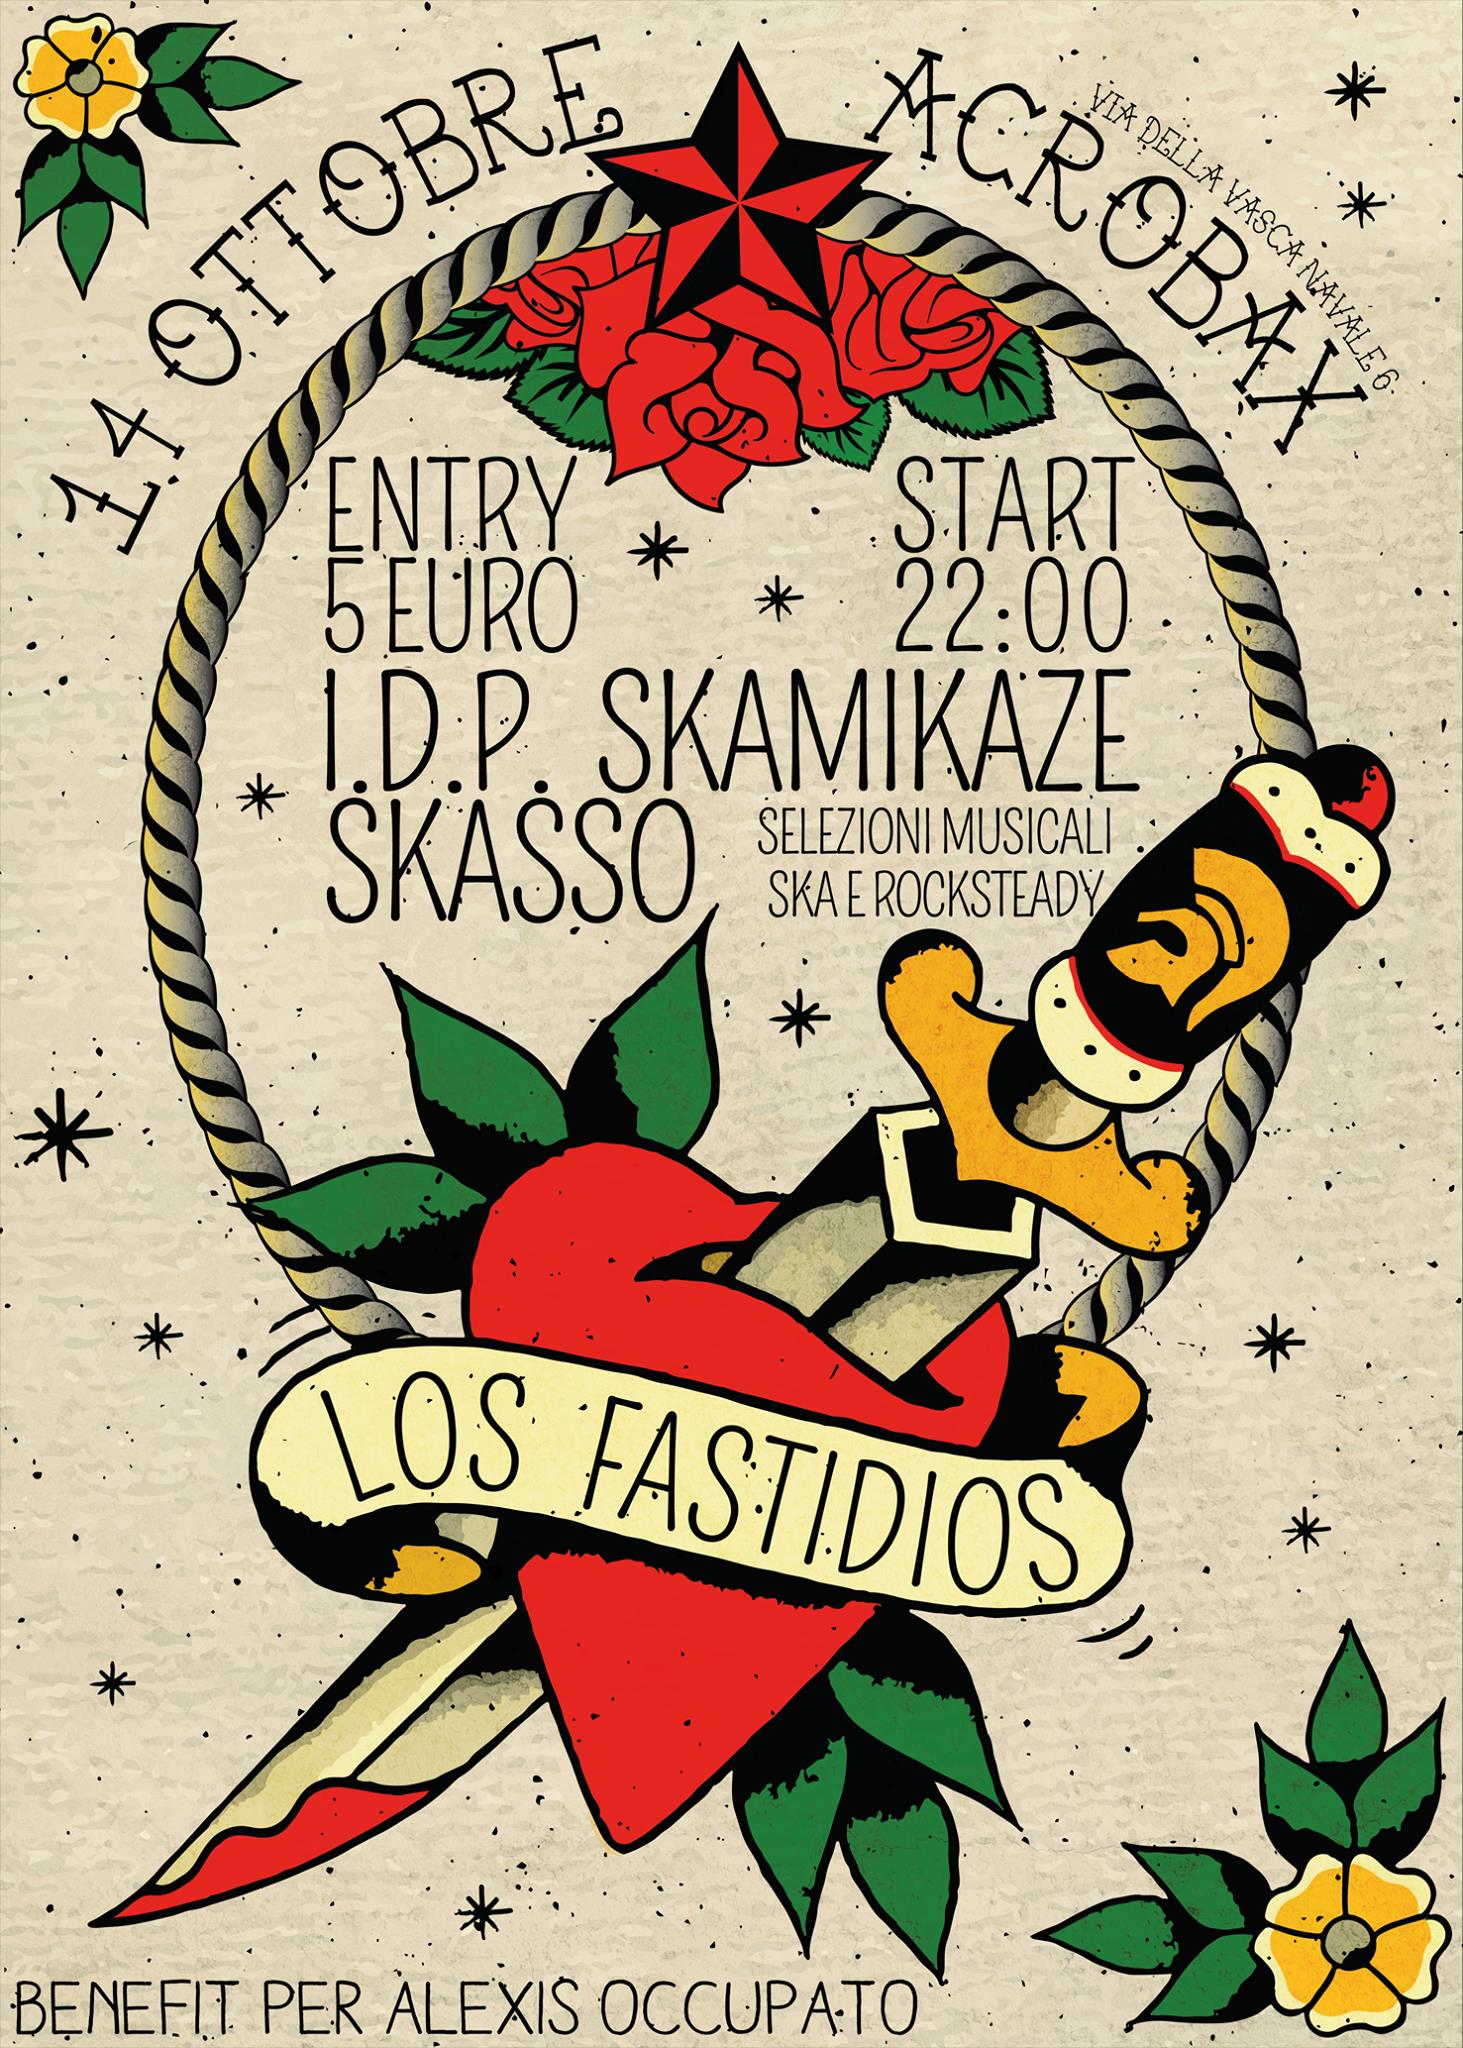 Rude night: Los Fastisios-Skasso-Skamikaze Sound Attack-Idp